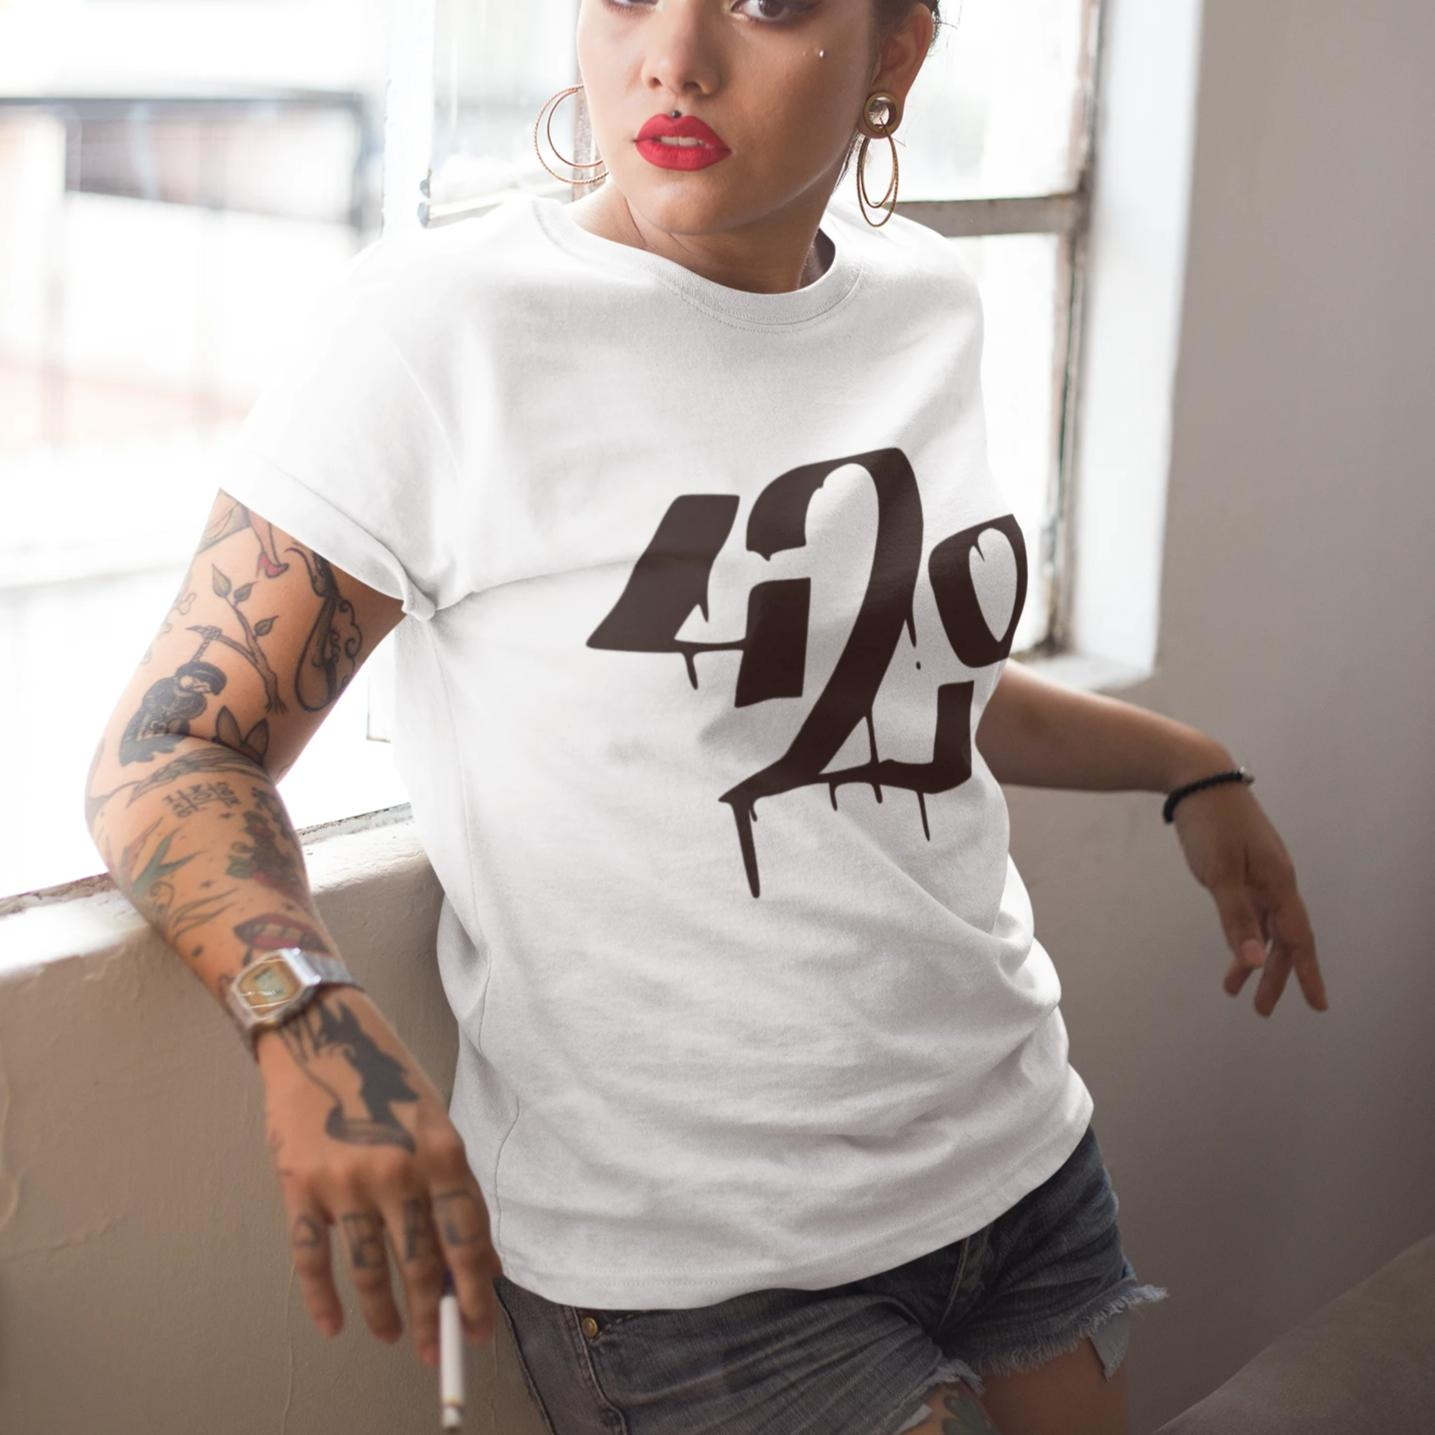 420 white - Rave On!® - Damenshirt Damen Basic T-Shirt - Rave On!® der Club & Techno Szene Shop für Coole Junge Mode Streetwear Style & Fashion Outfits + Sexy Festival 420 Stuff